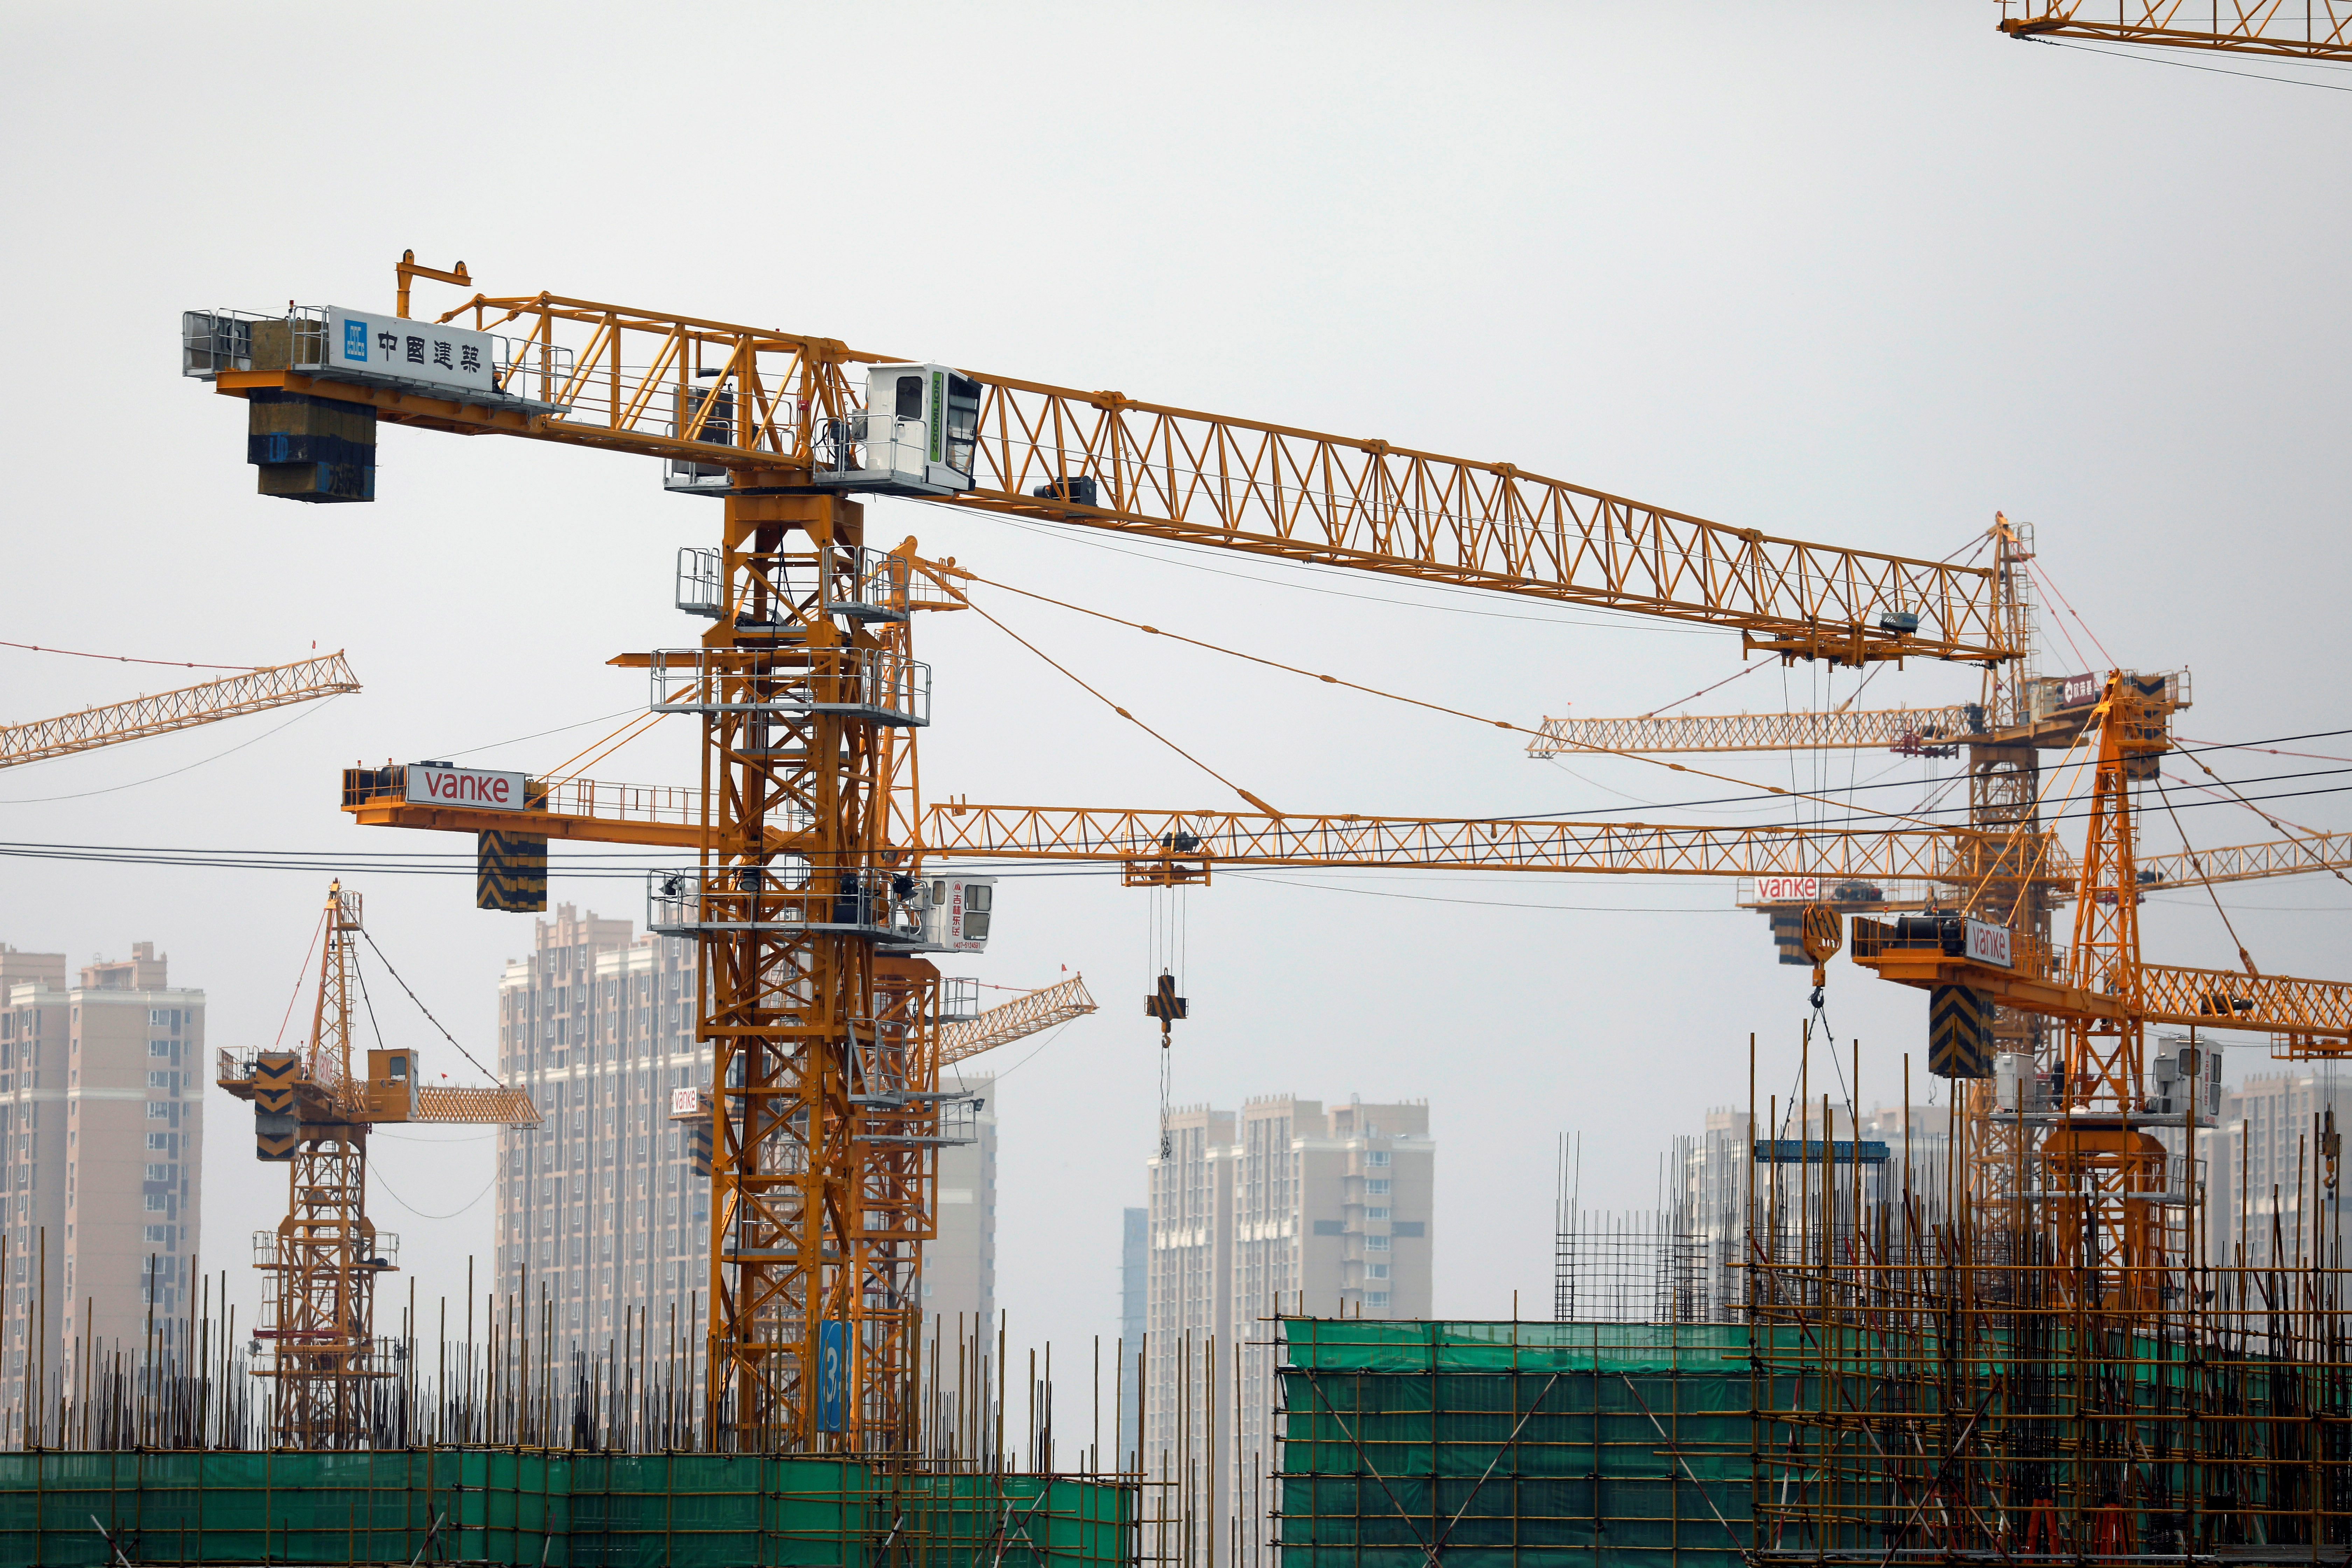 Cranes are seen at a construction site in Beijing, China July 16, 2020.